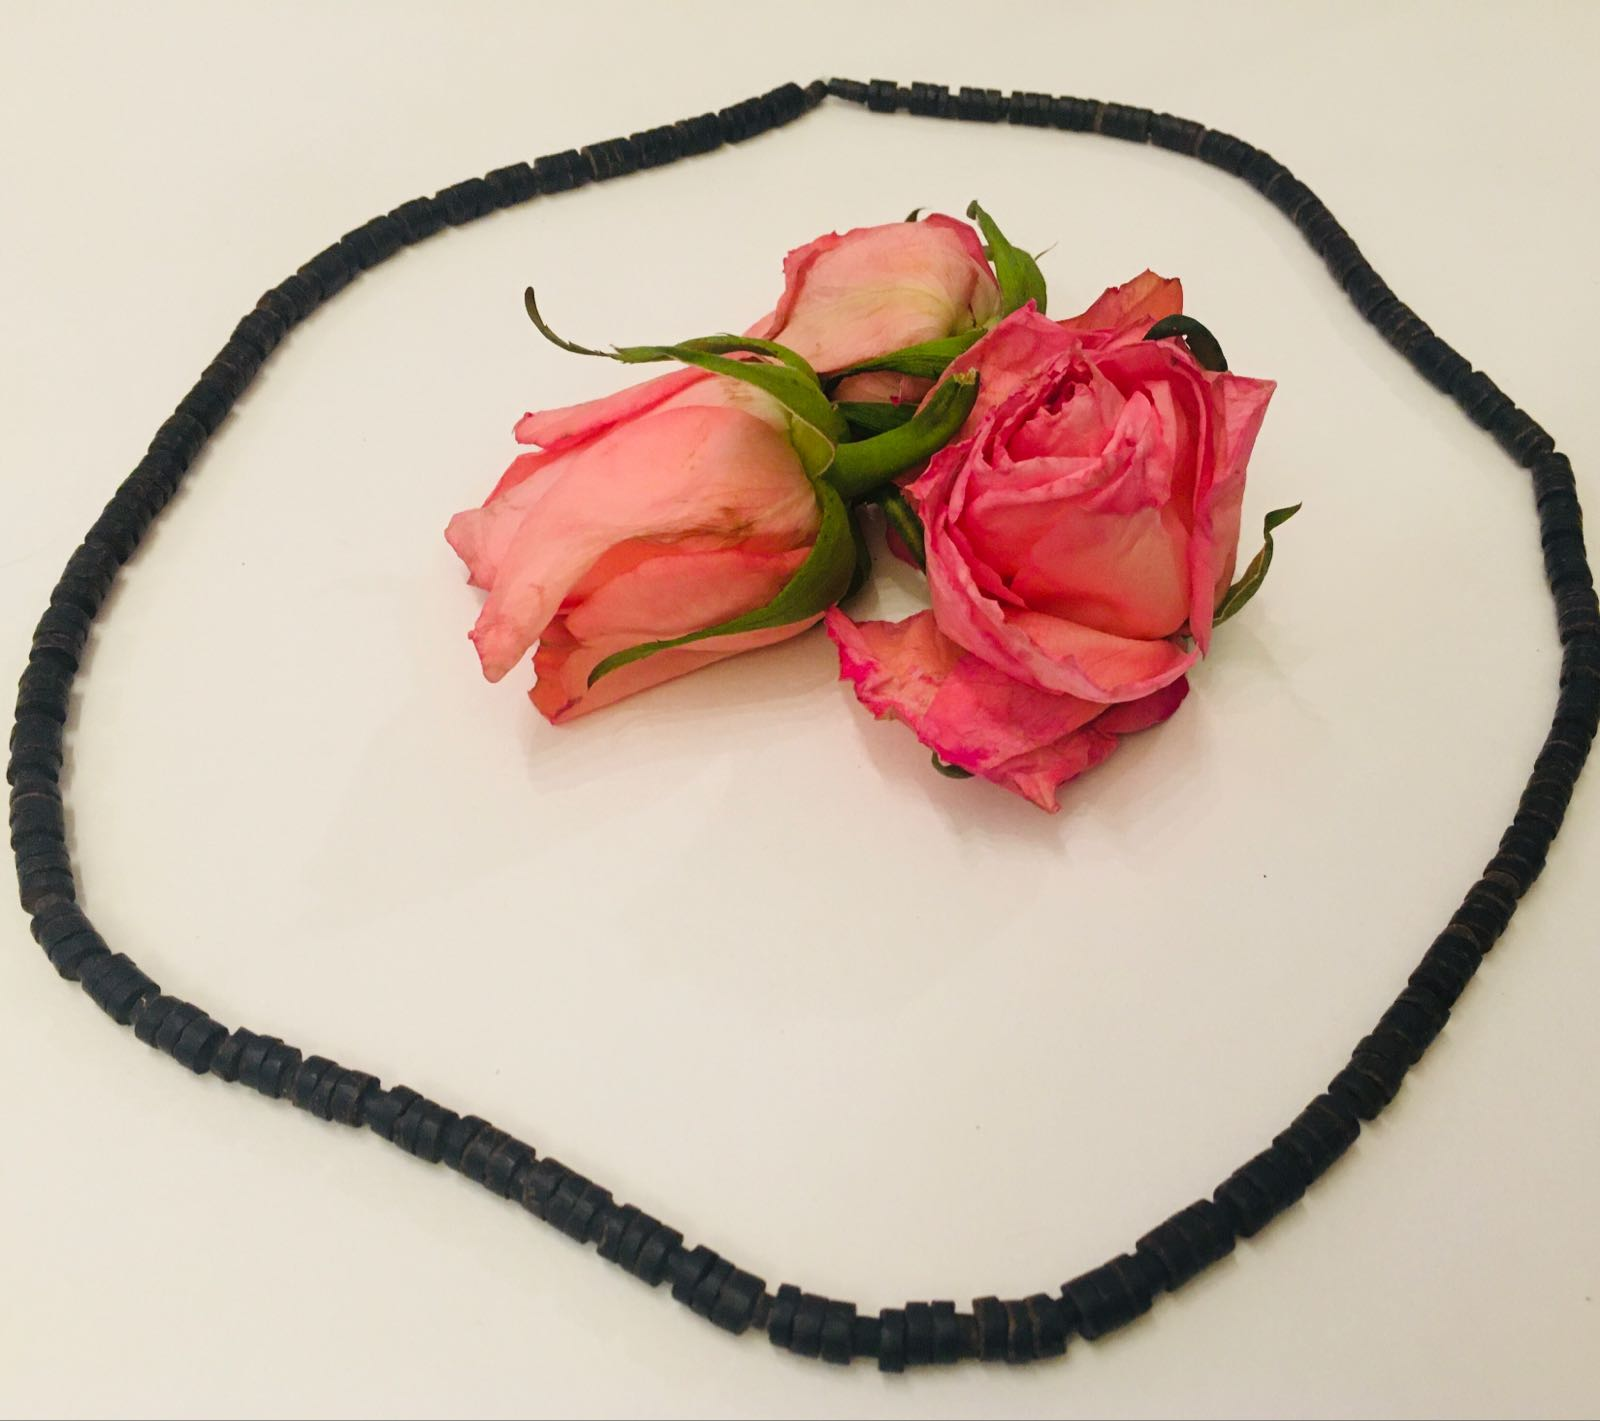 Apurinã People: Handcrafted Necklace